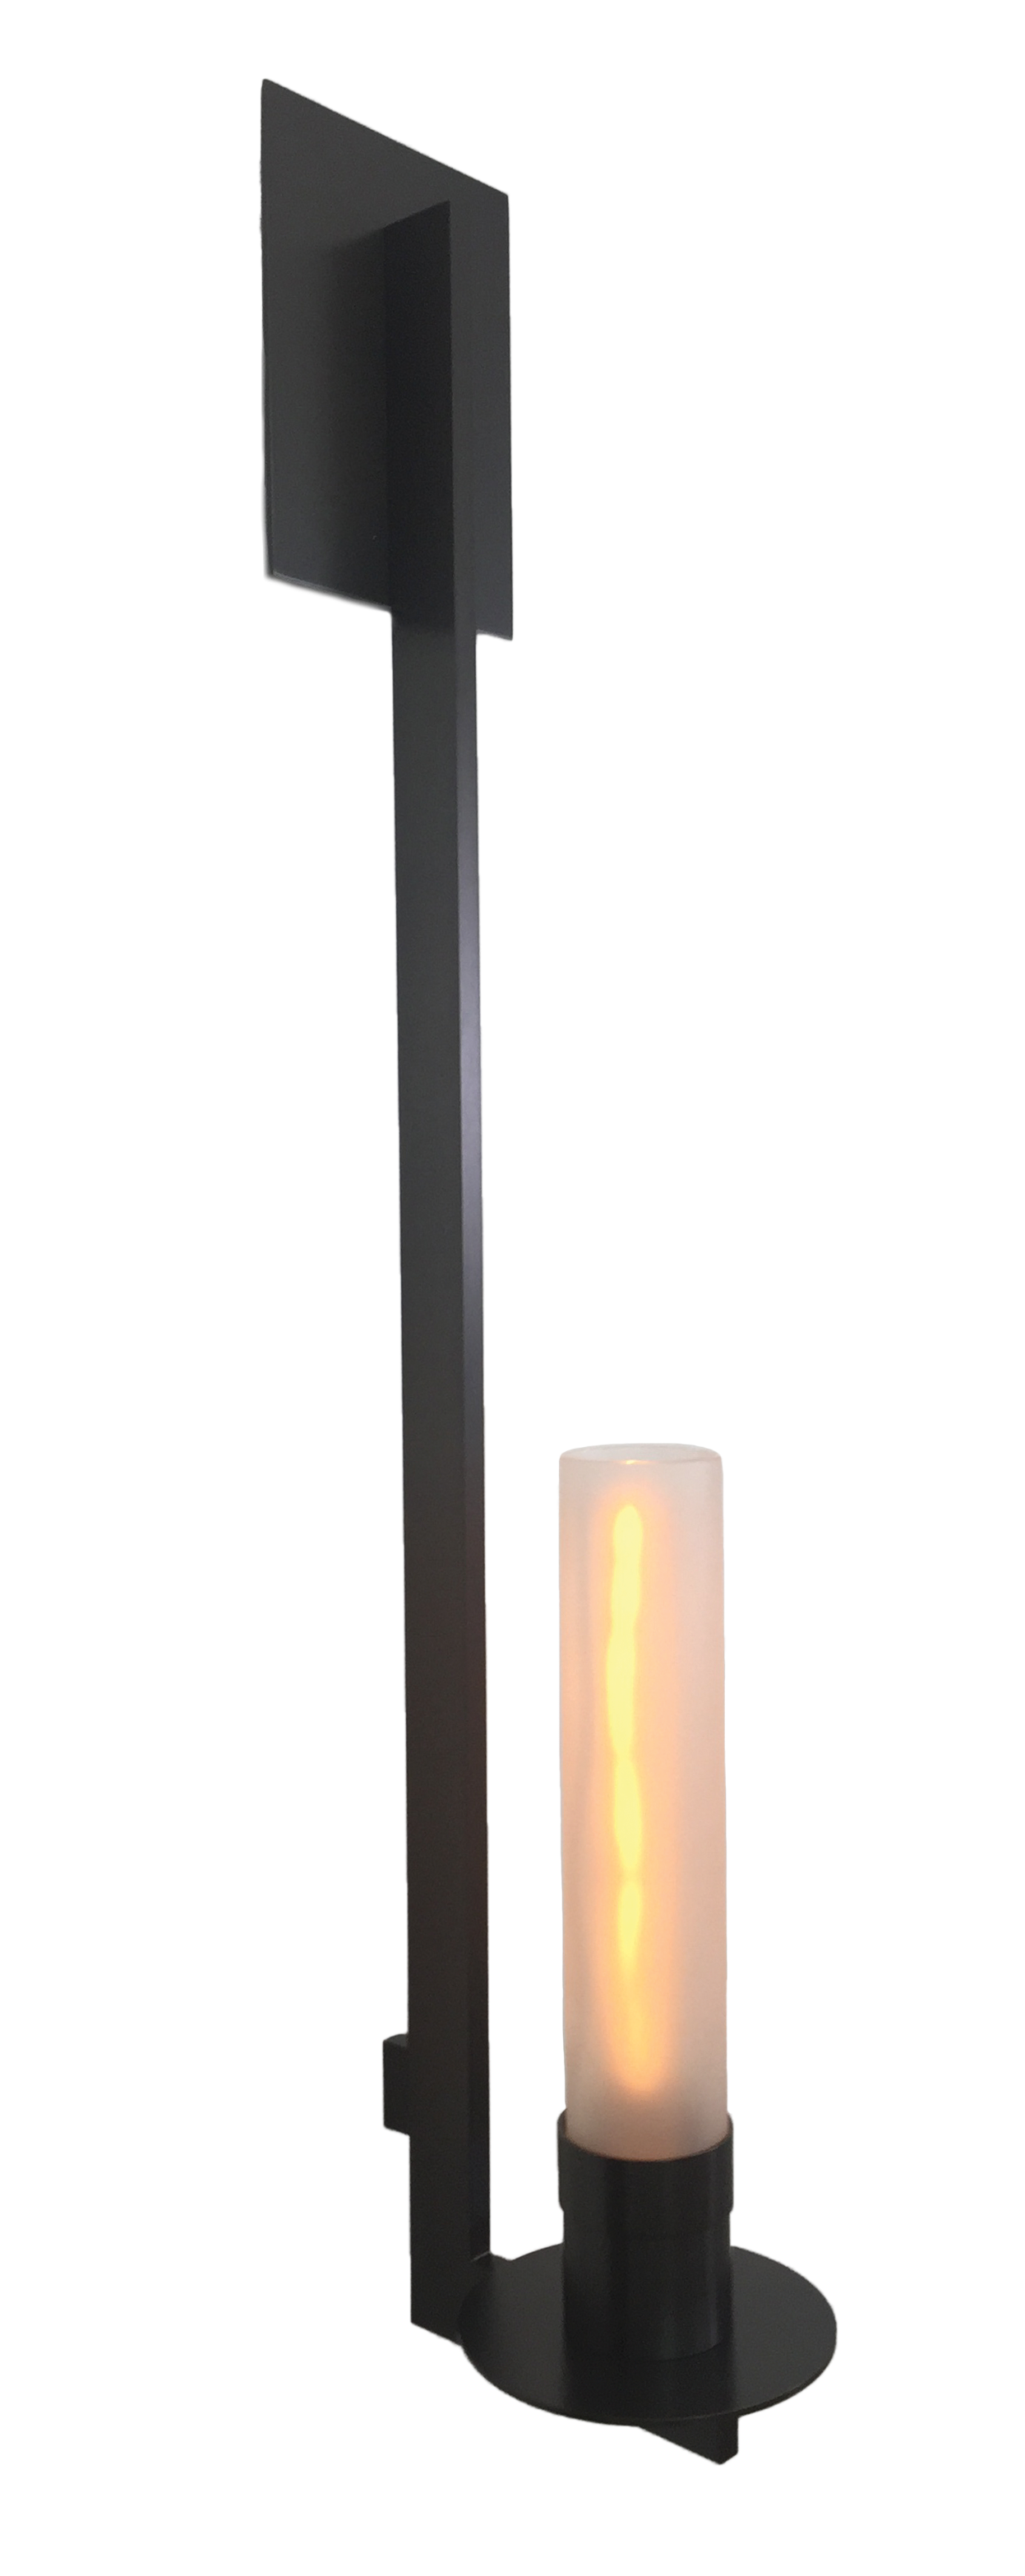 Buy candela wall sconce by phoenix day madetoorder